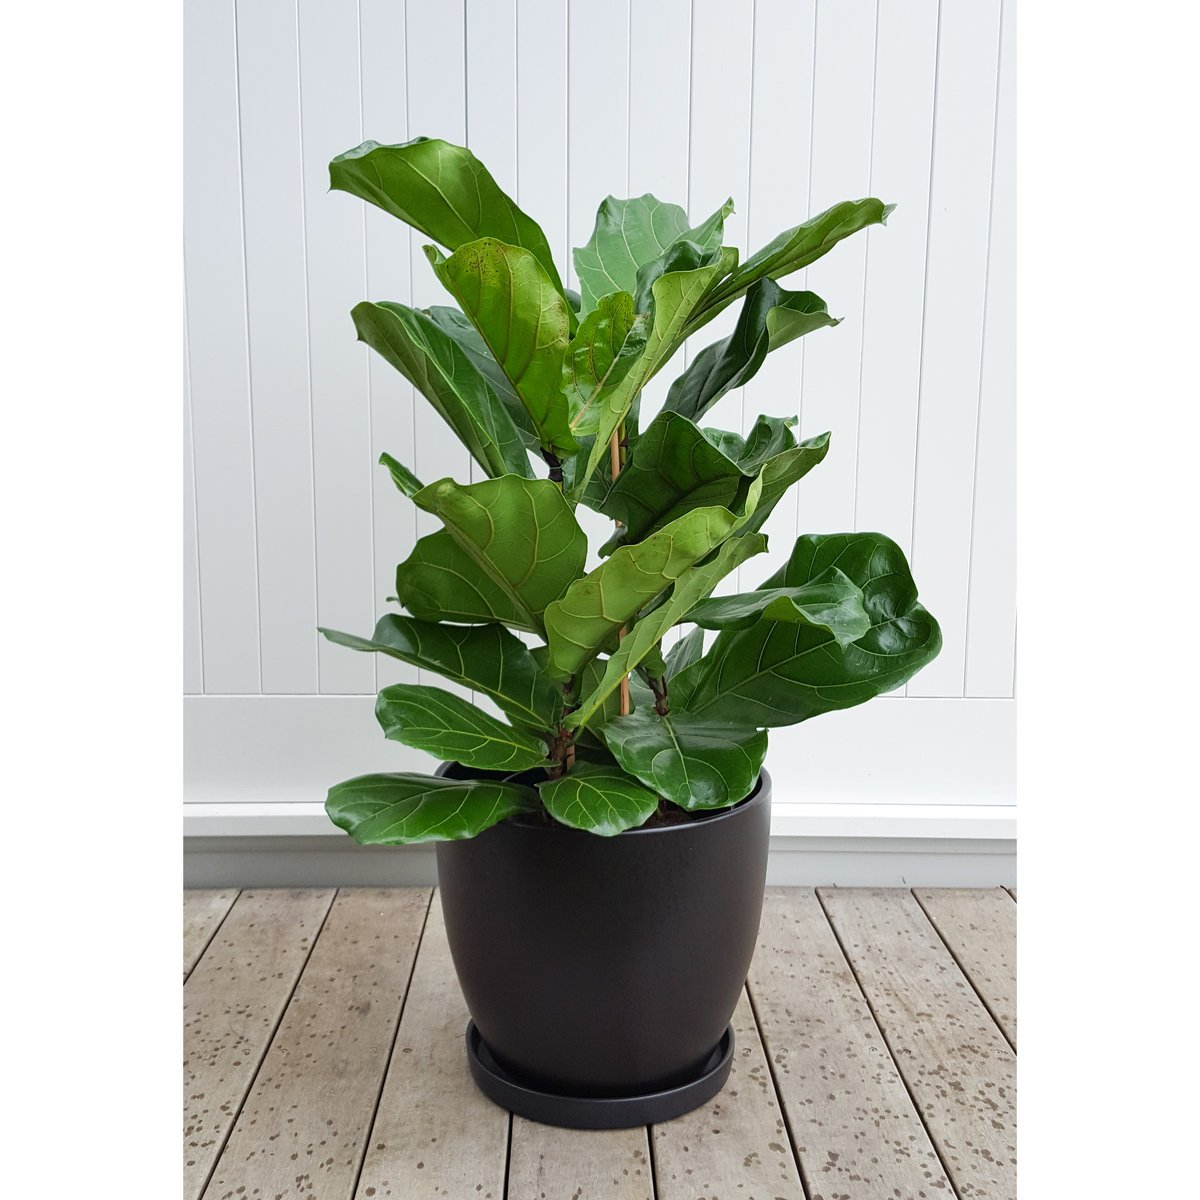 Fiddle leaf fig tree for sale nz fiddle leaf fig tree ficus lyrata 1 plant 3 feet tall ship in - Indoor plant pots with saucers ...